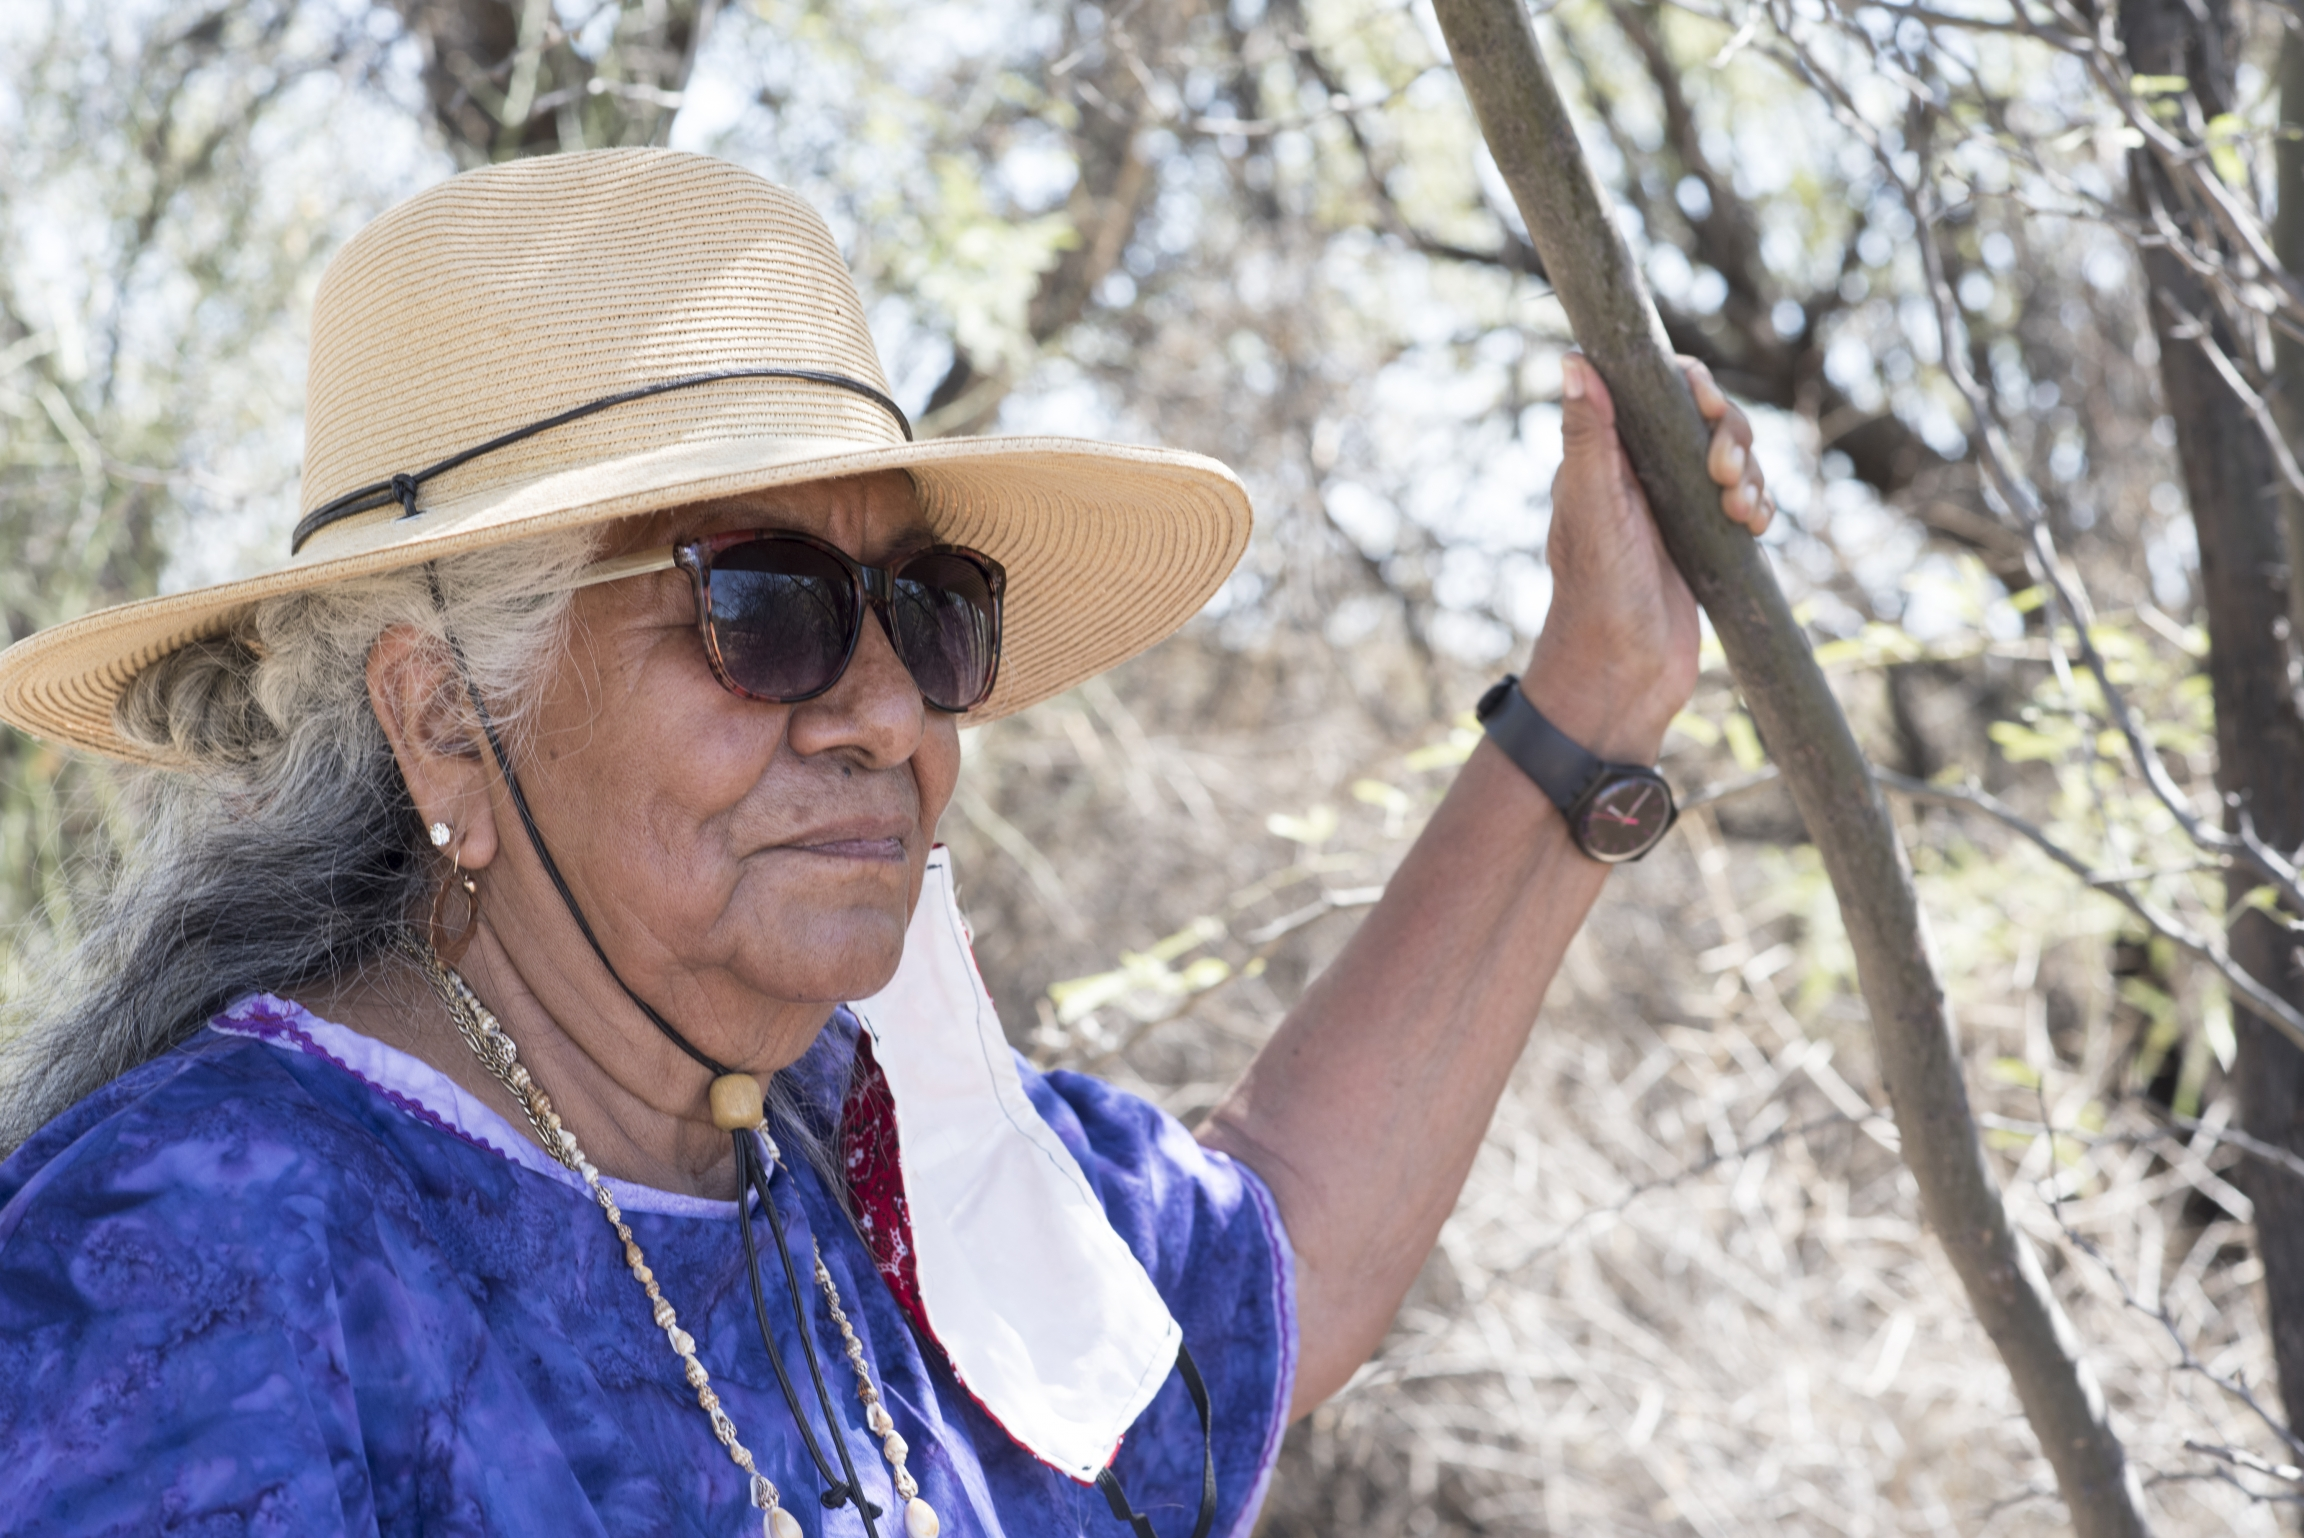 Lorraine Marquez Eiler's one of about 100 Hia-Ced O'odham tribal members who once lived in Darby Wells, a village a little over 30 miles north of the Arizona-Mexico border. Nobody lives there anymore.